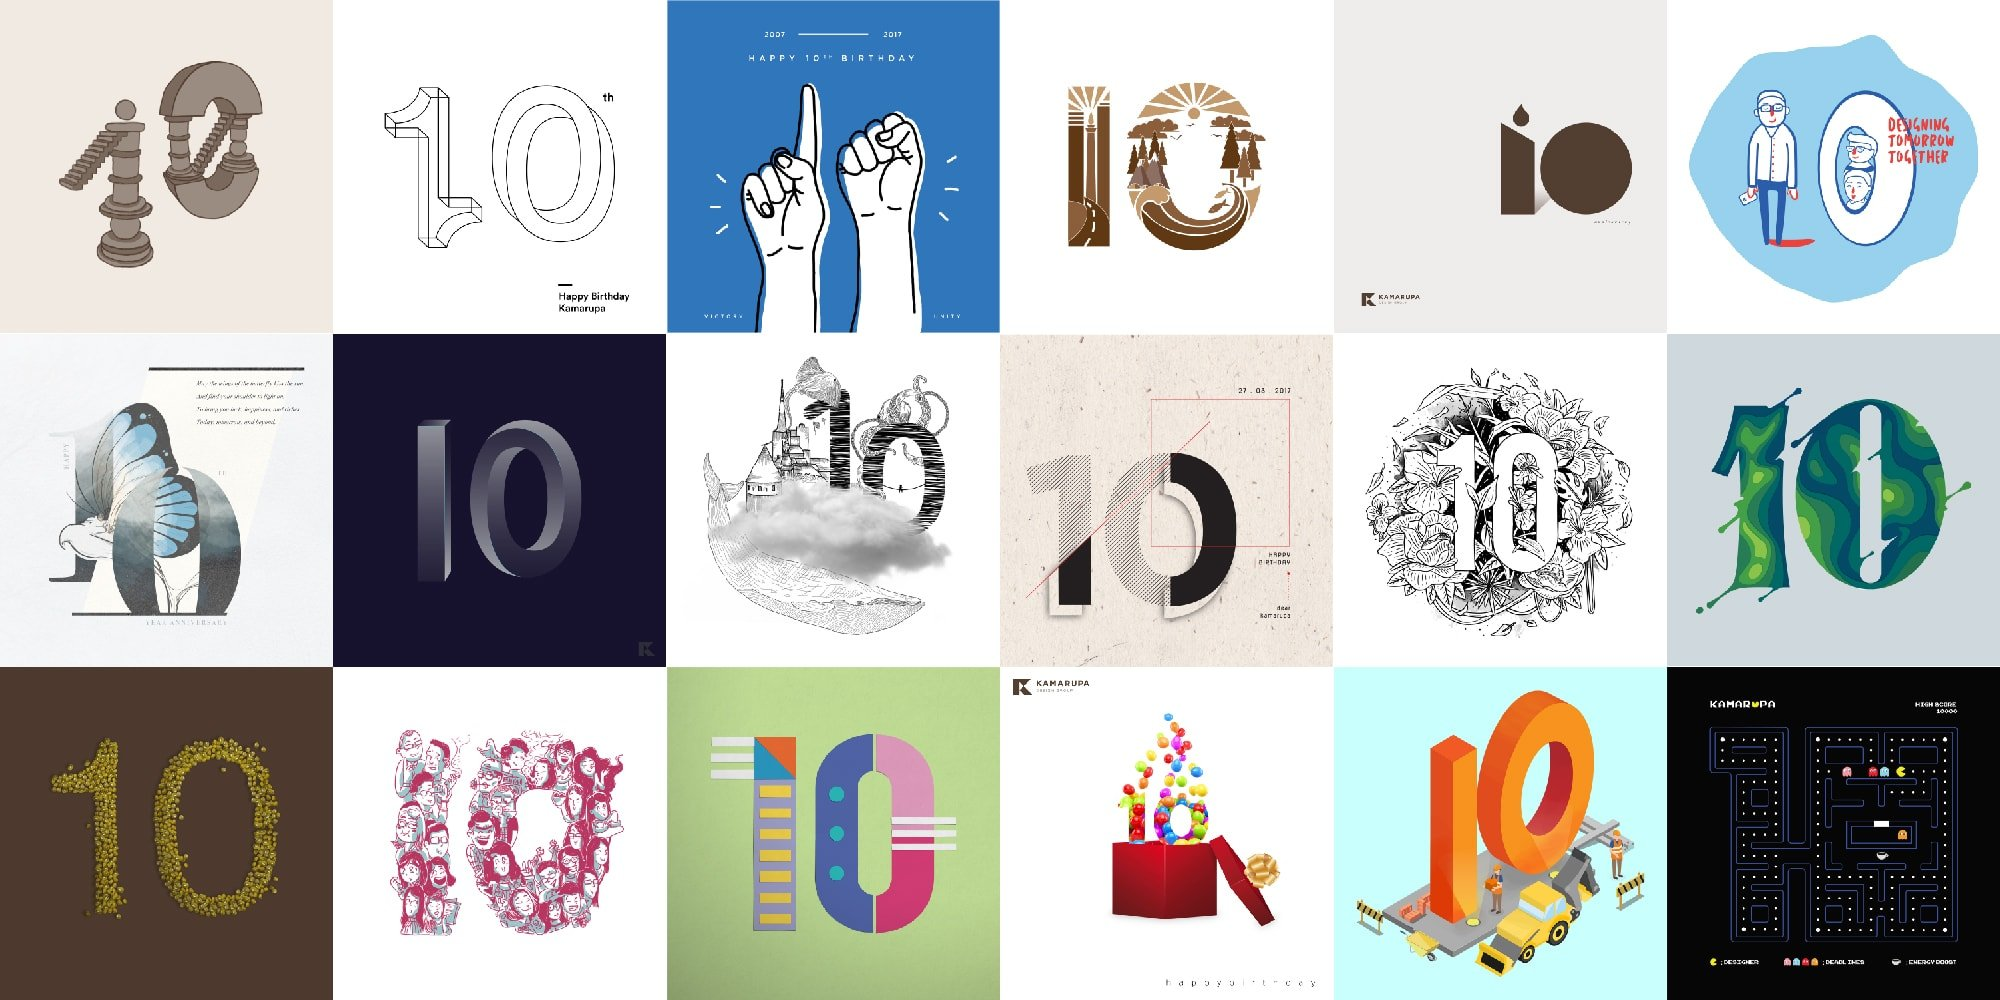 18 Designers Commemorate Our 10-year Anniversary